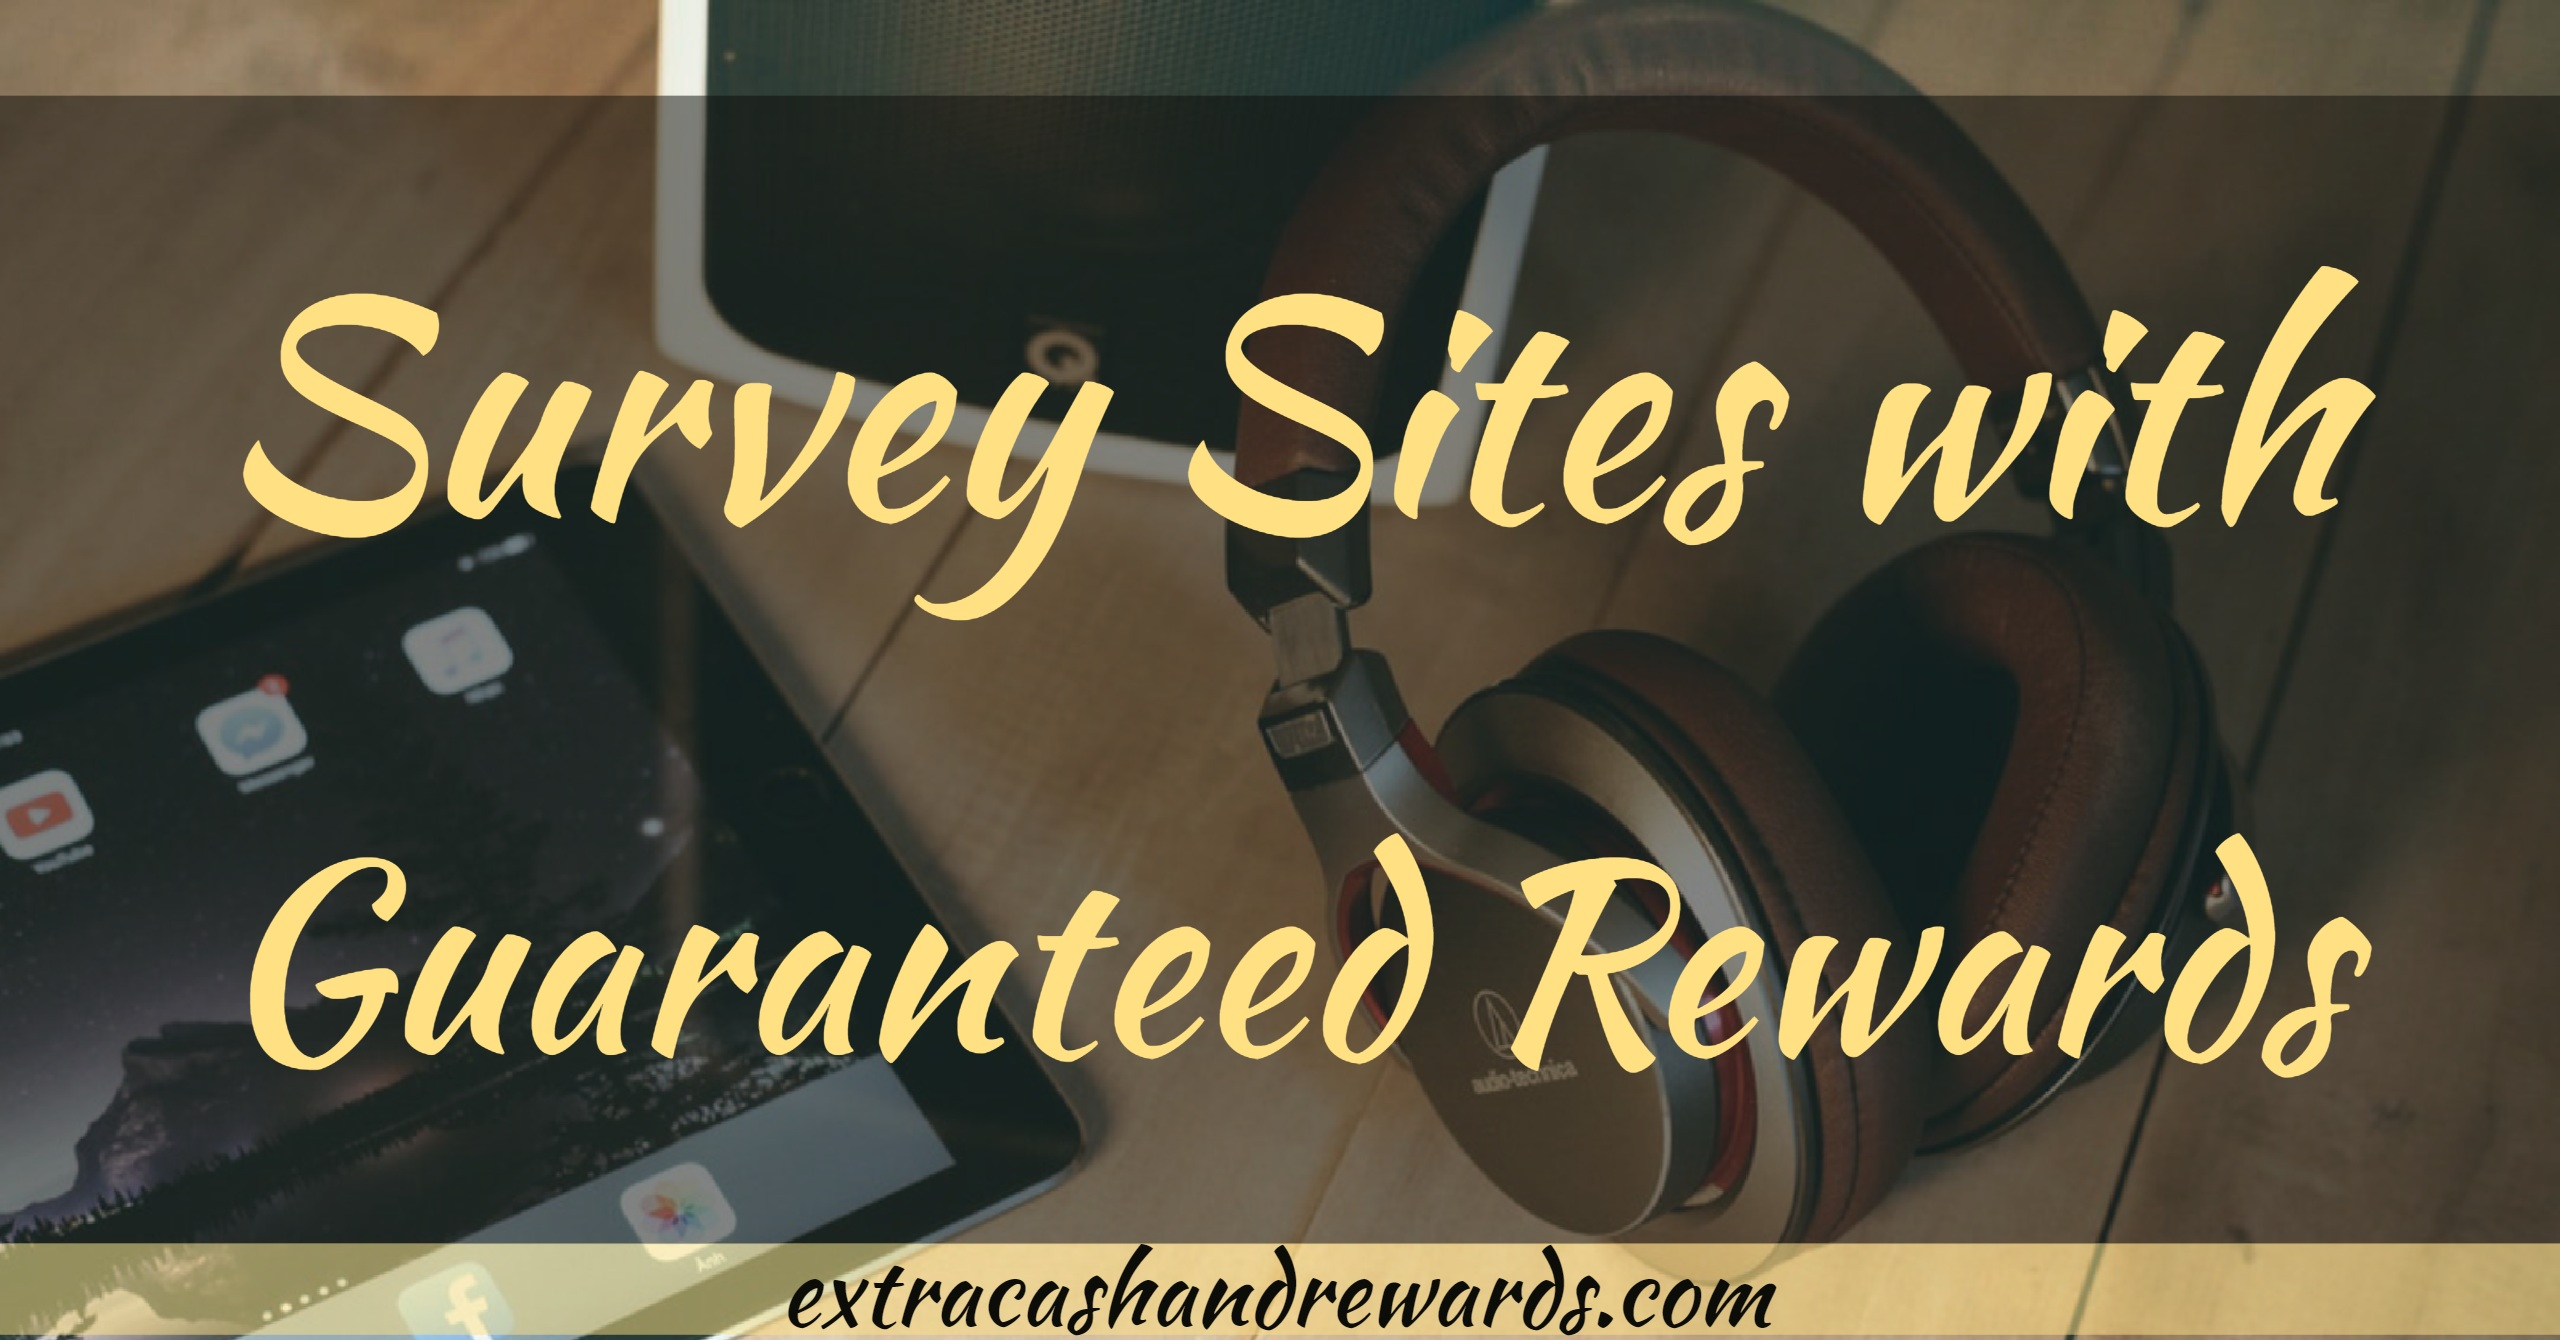 8 Survey Panels That Pay Even If You Screen Out/Disqualify